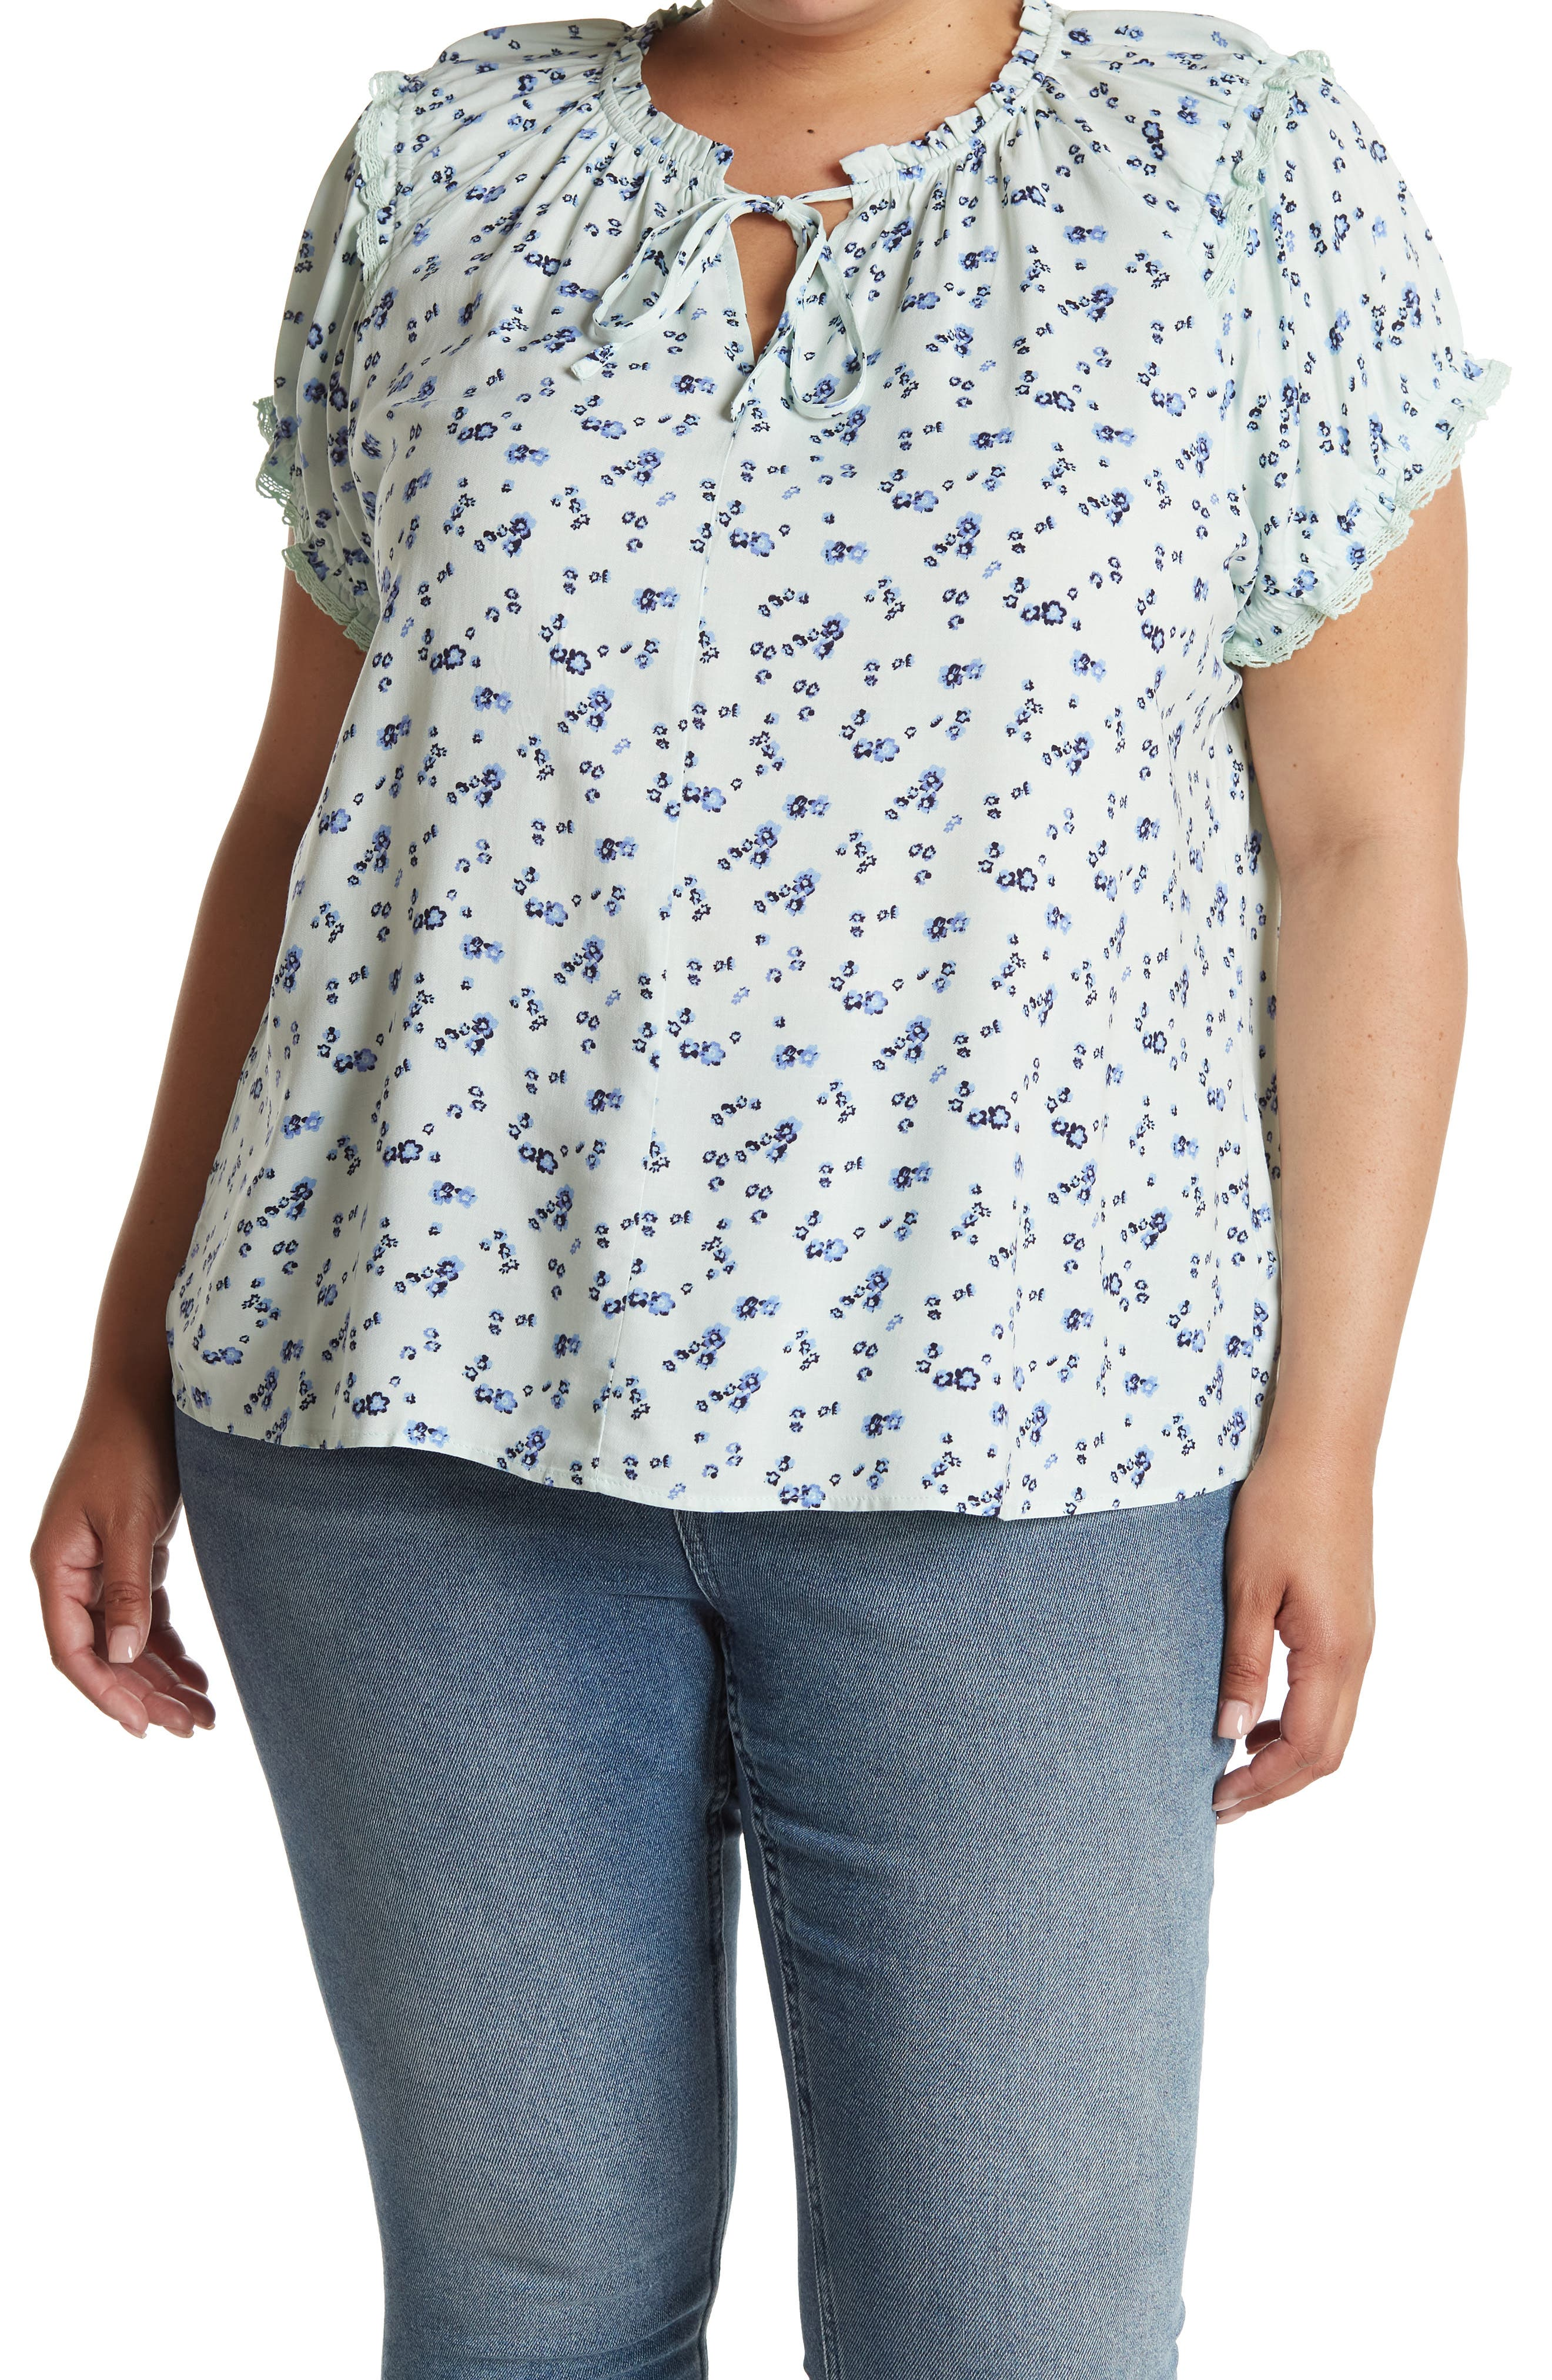 Cottagecore Clothing, Soft Aesthetic Como Vintage Ruffle Sleeve Printed Tie Neck Top Size 3X - Dark Green1 at Nordstrom Rack $19.97 AT vintagedancer.com